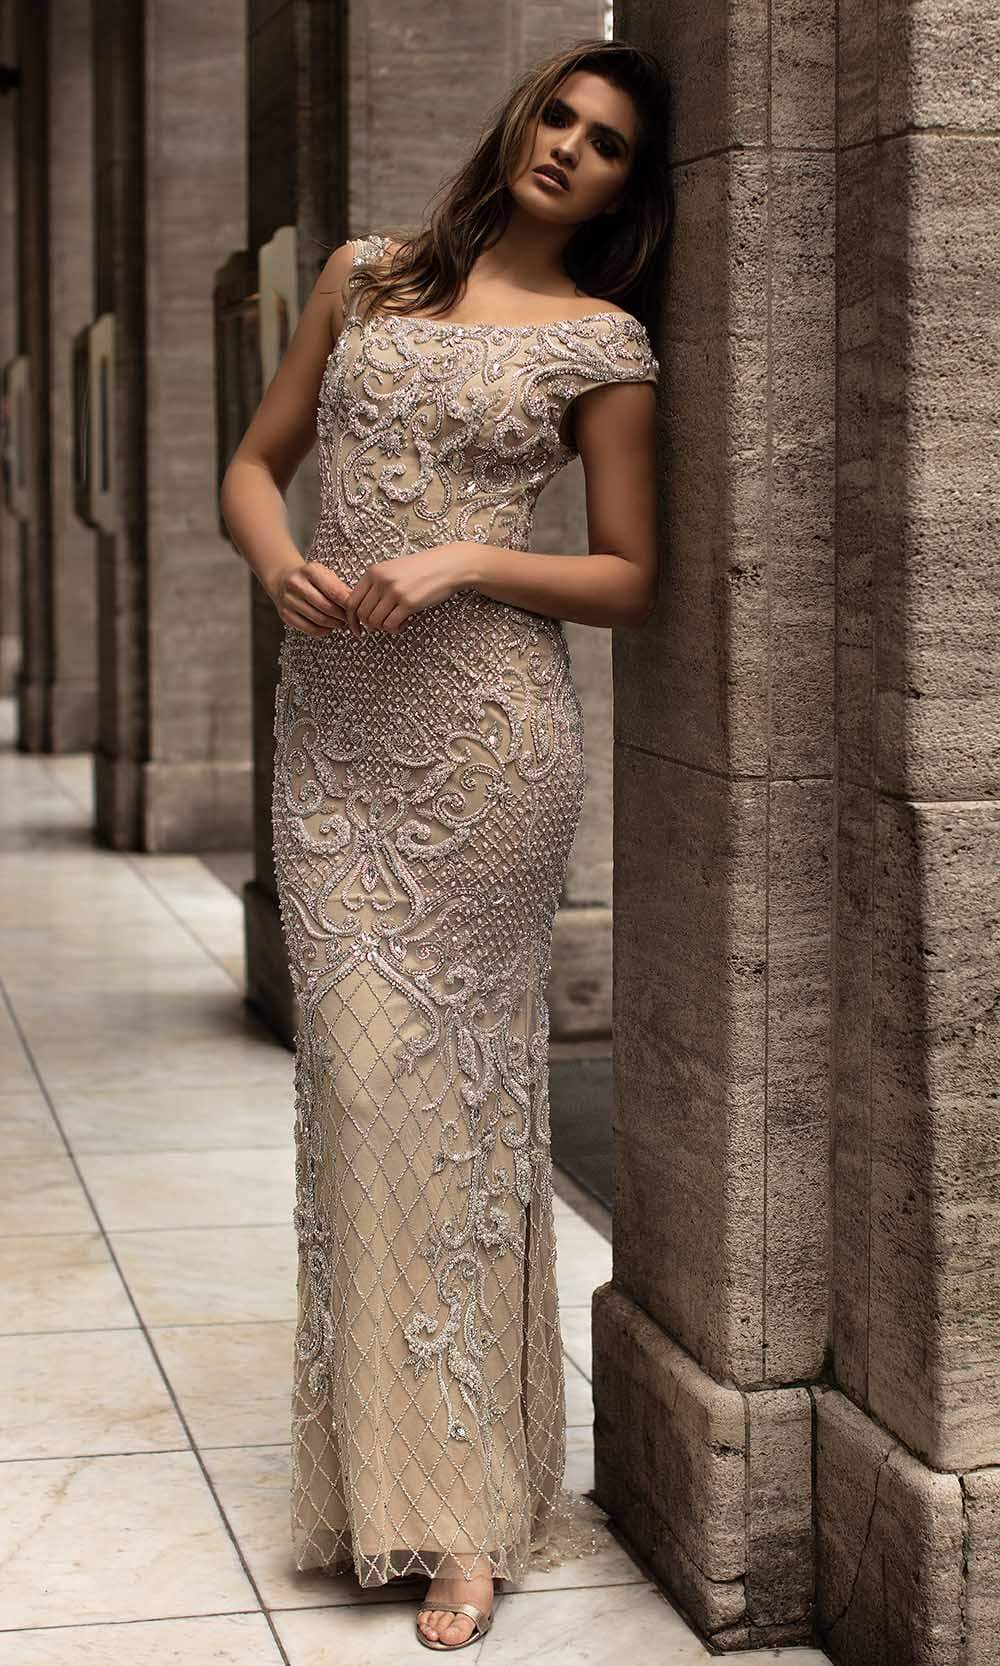 Chic and Holland - HF1520 Bateau Neck Jewel Adorned Sheath Gown from Chic and Holland